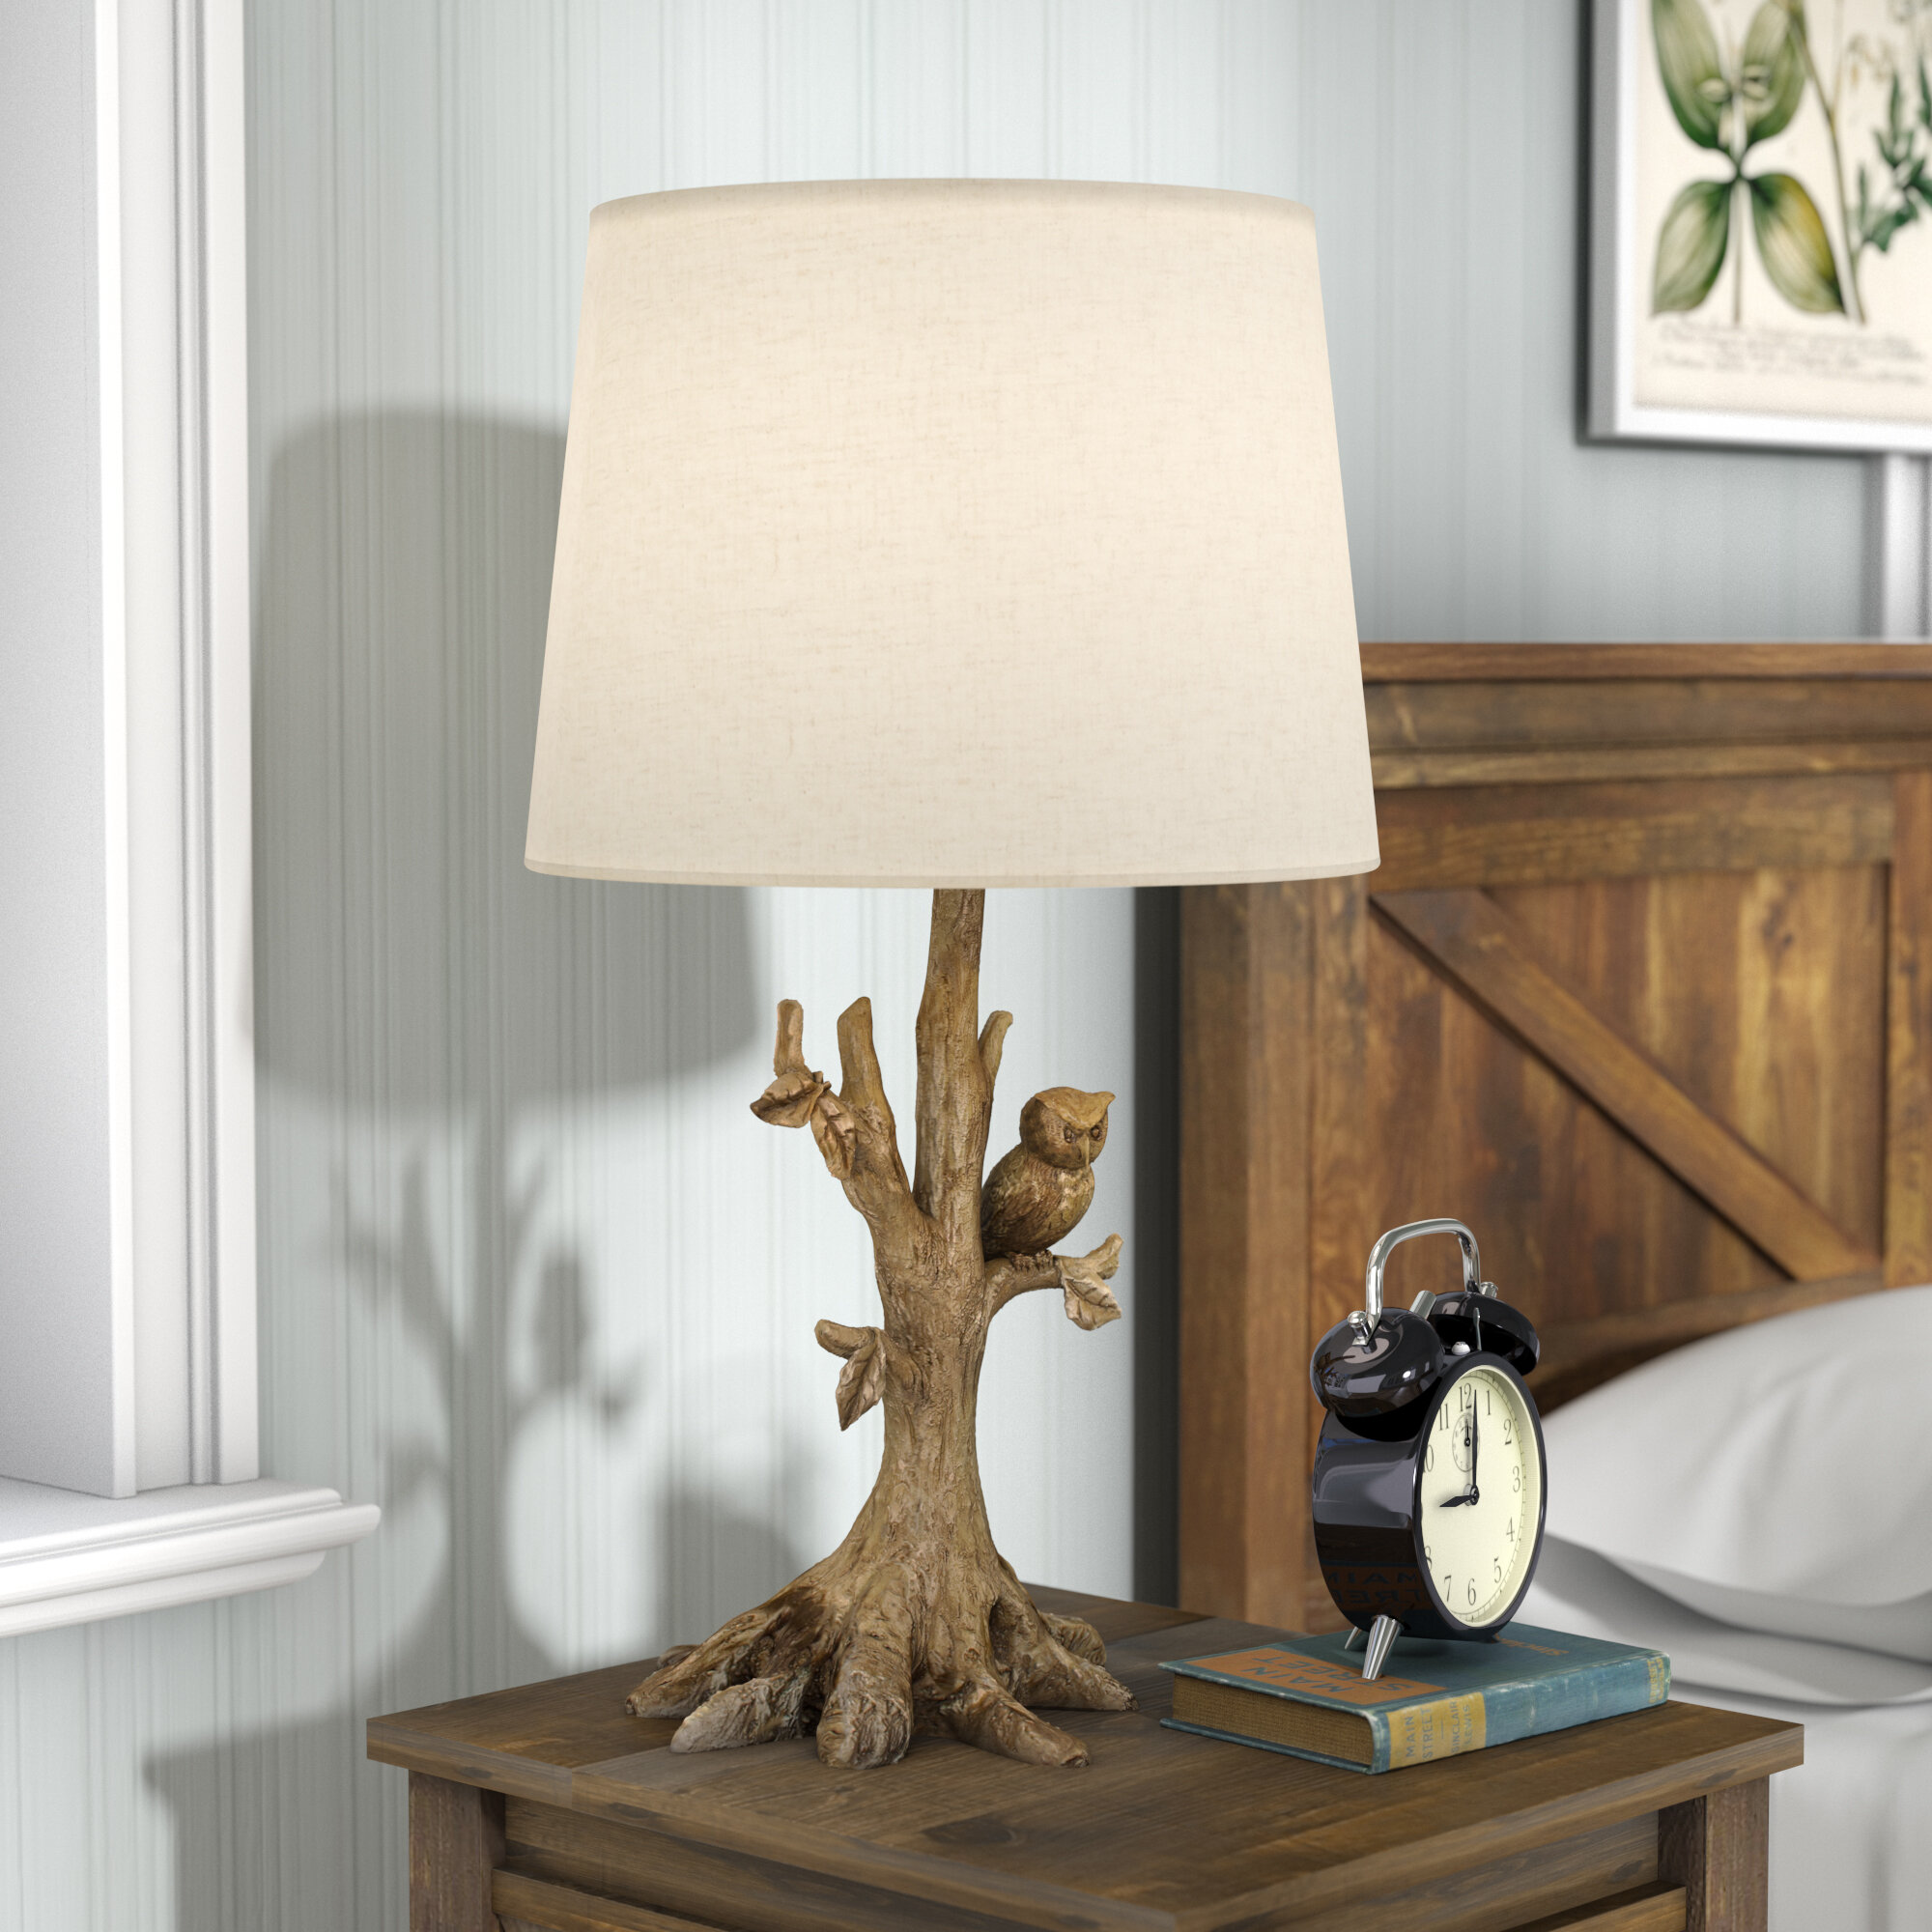 Cabin Lodge Table Lamps You Ll Love In 2021 Wayfair